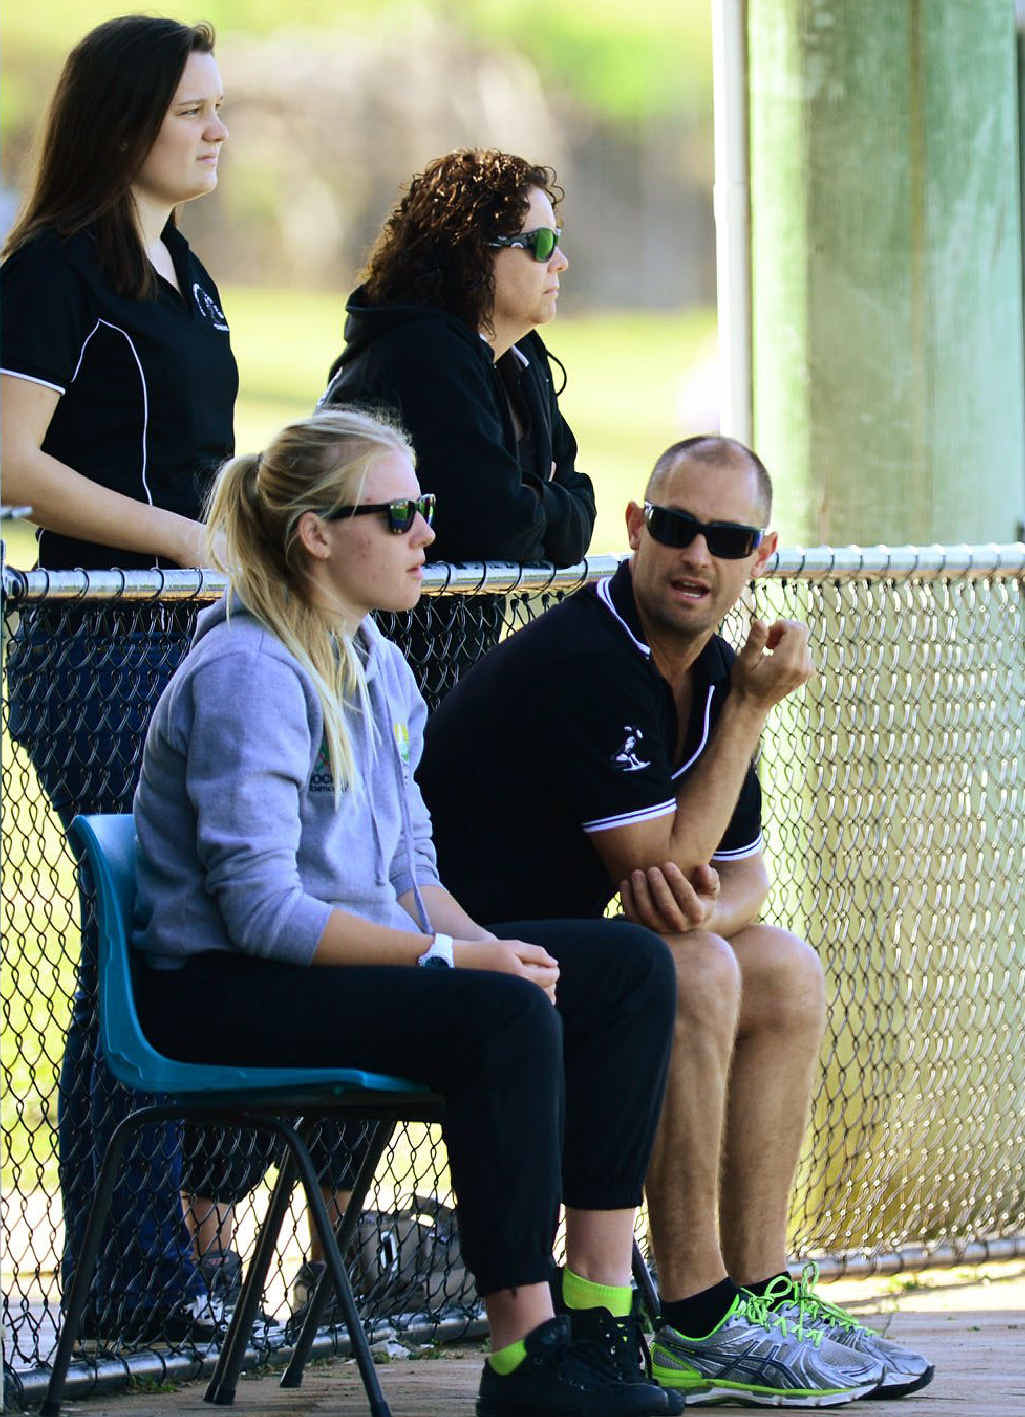 VITAL SUPPORT: Wests player Eden Jackat (sitting) joins supportive coach Steve Rogers in cheering on the A-grade team following her knee reconstruction.